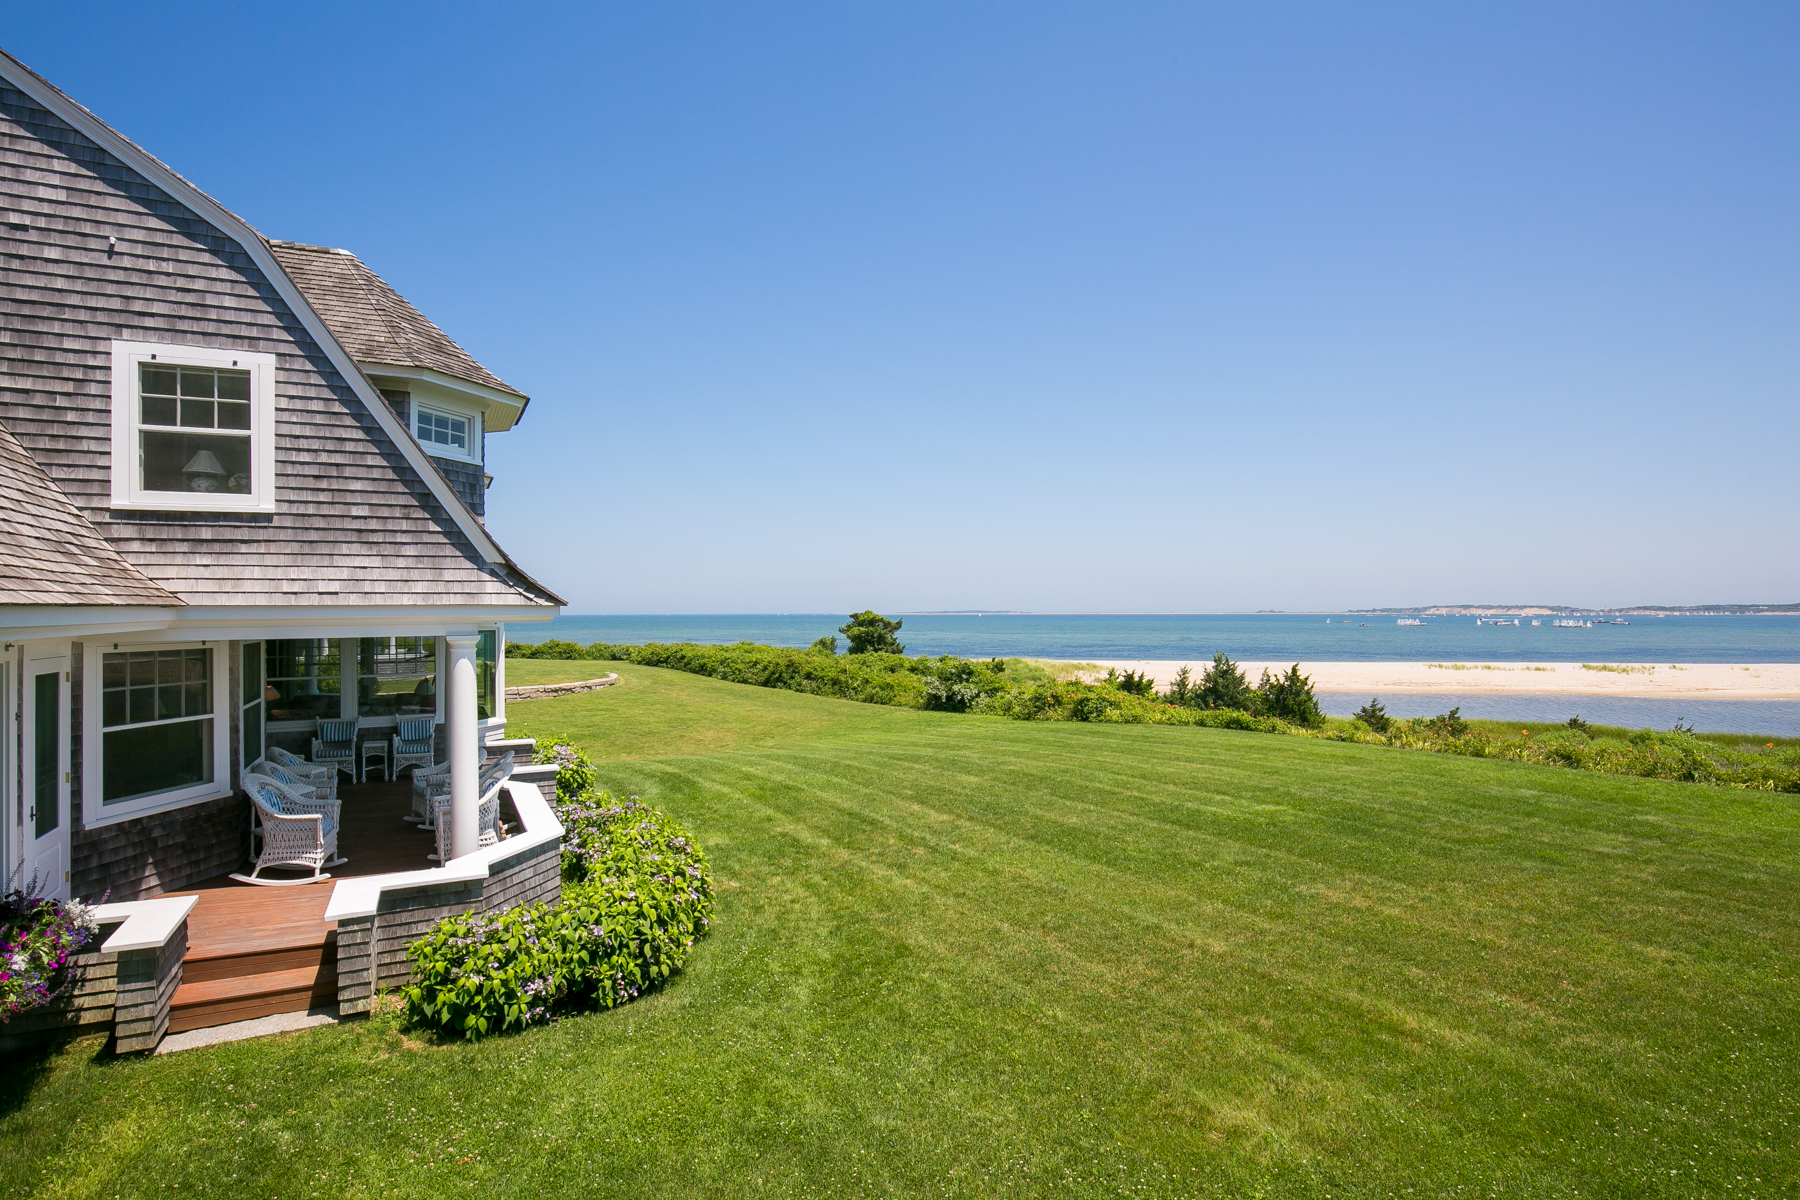 Single Family Home for Sale at Edgartown Harbor Waterfront Estate 7 Starbuck Neck Road Edgartown, Massachusetts, 02539 United States